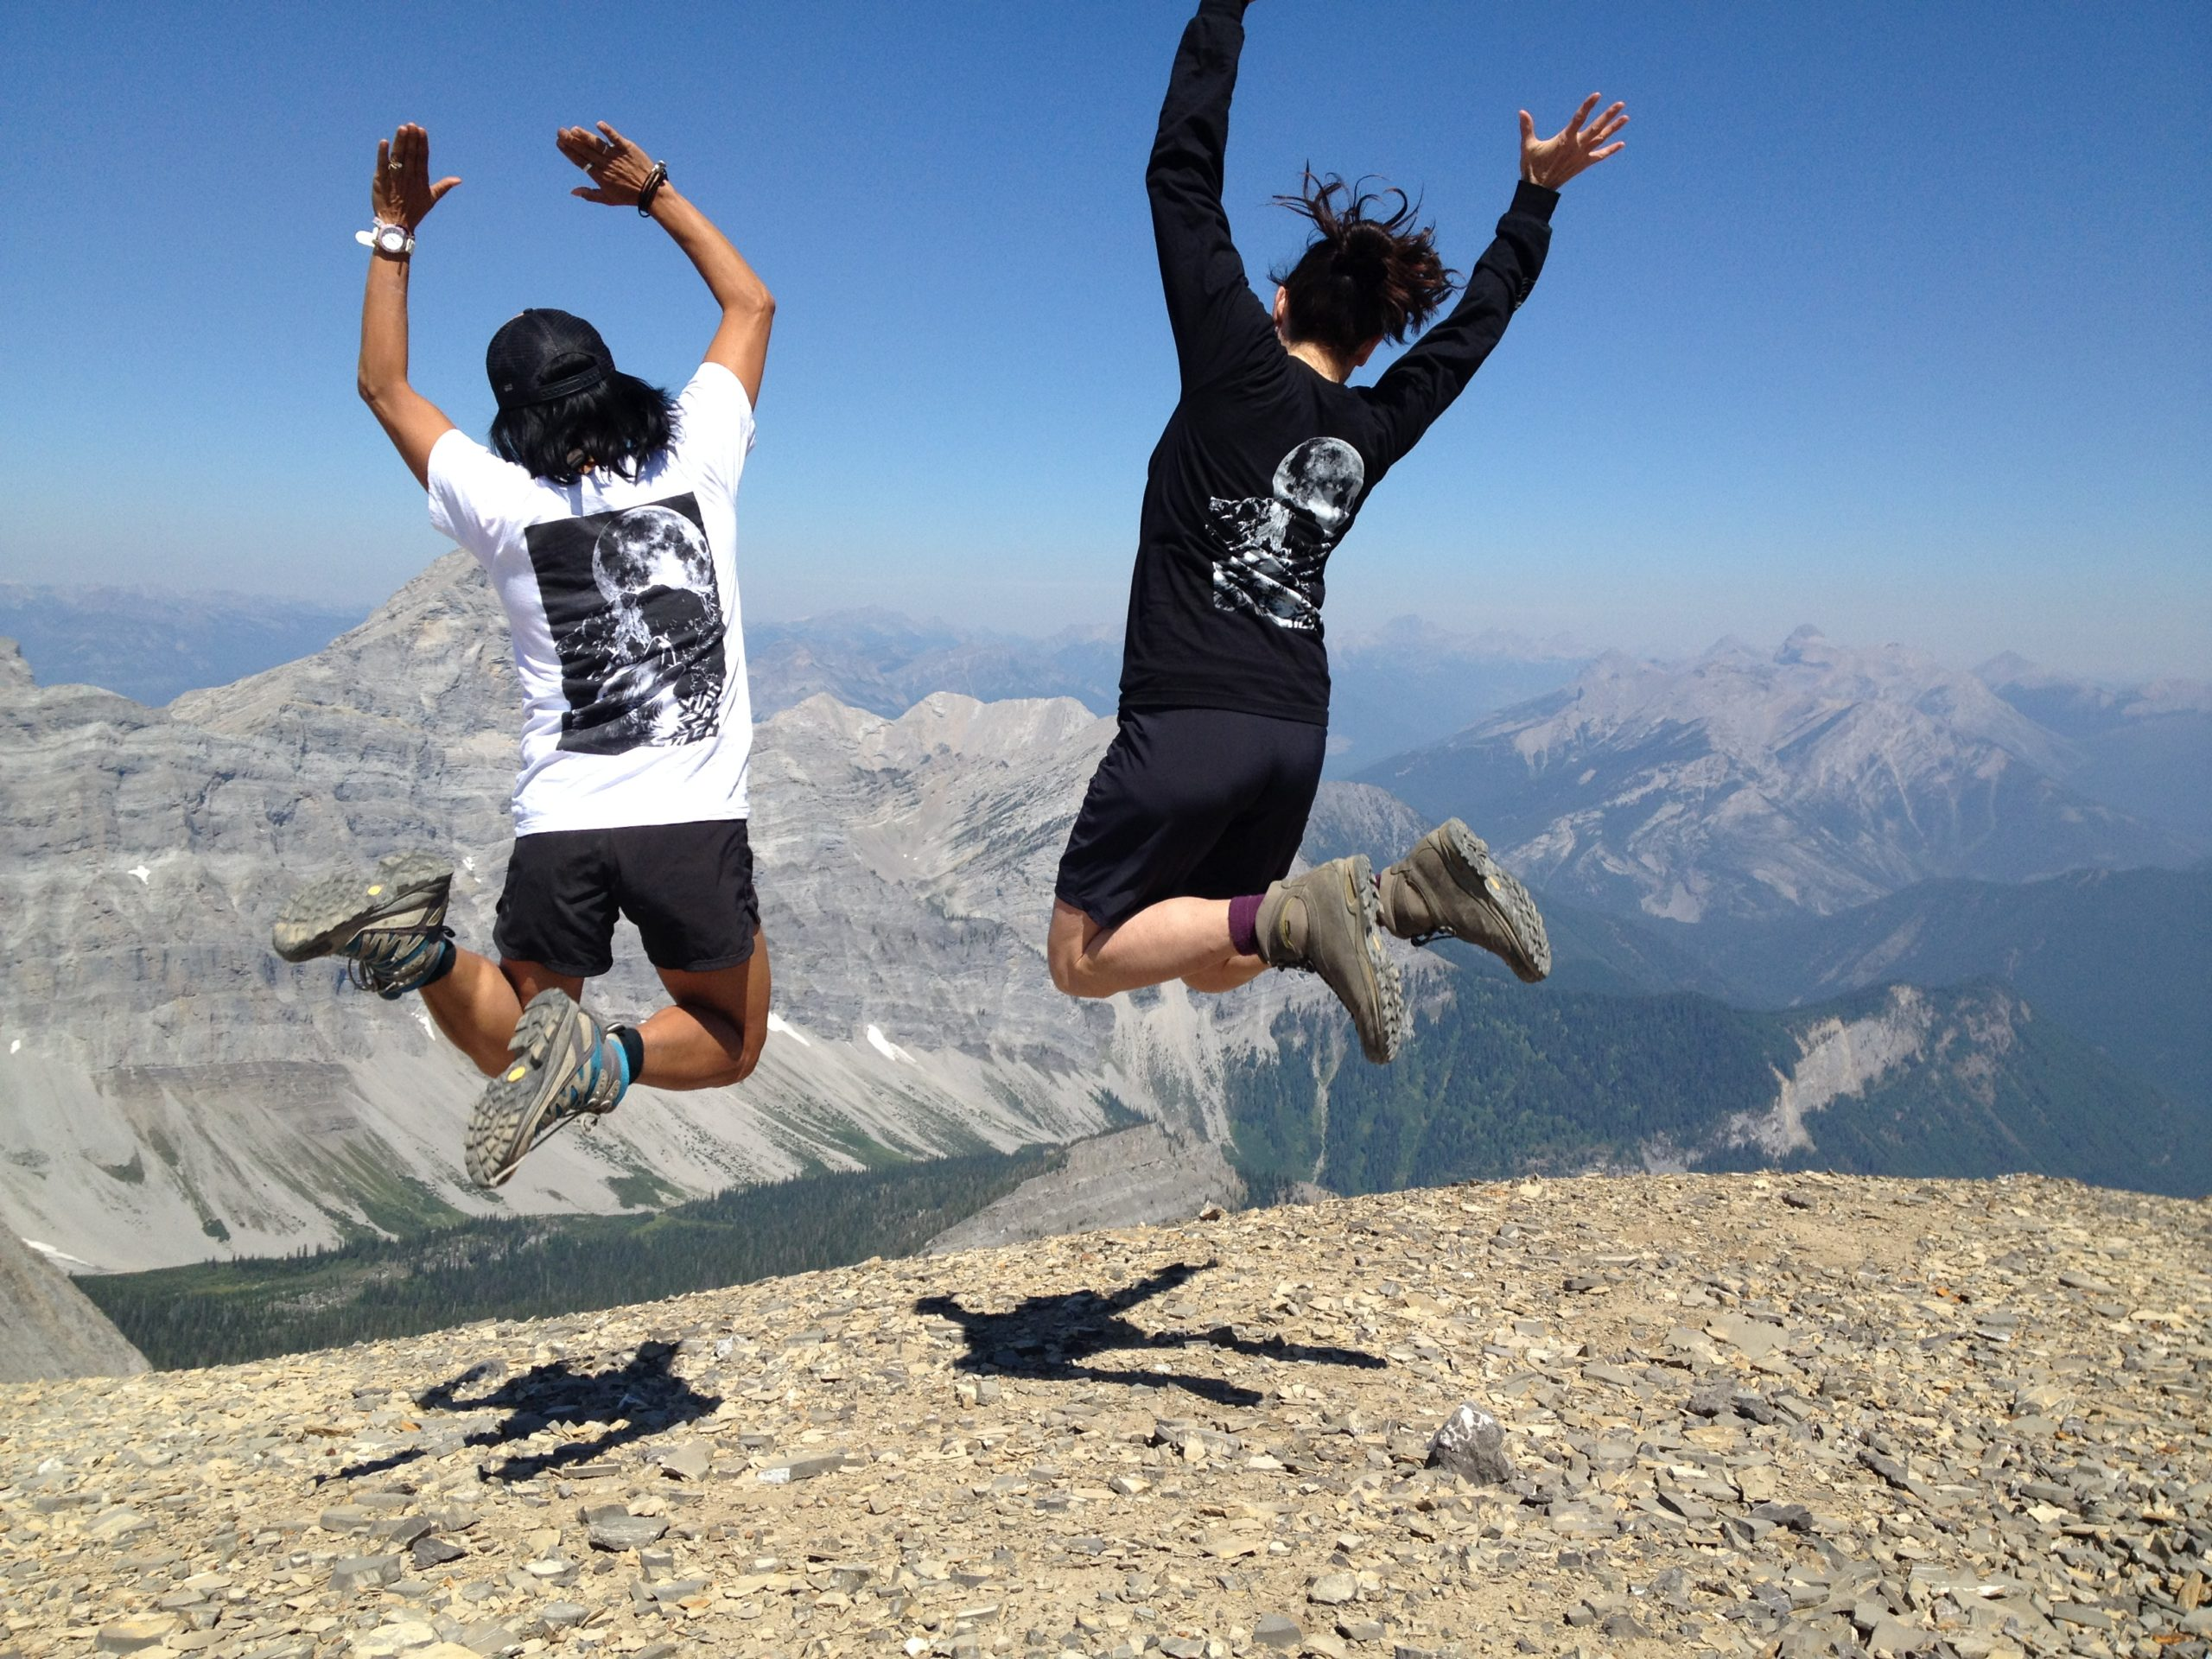 Two people on top of a mountain leaping into the air